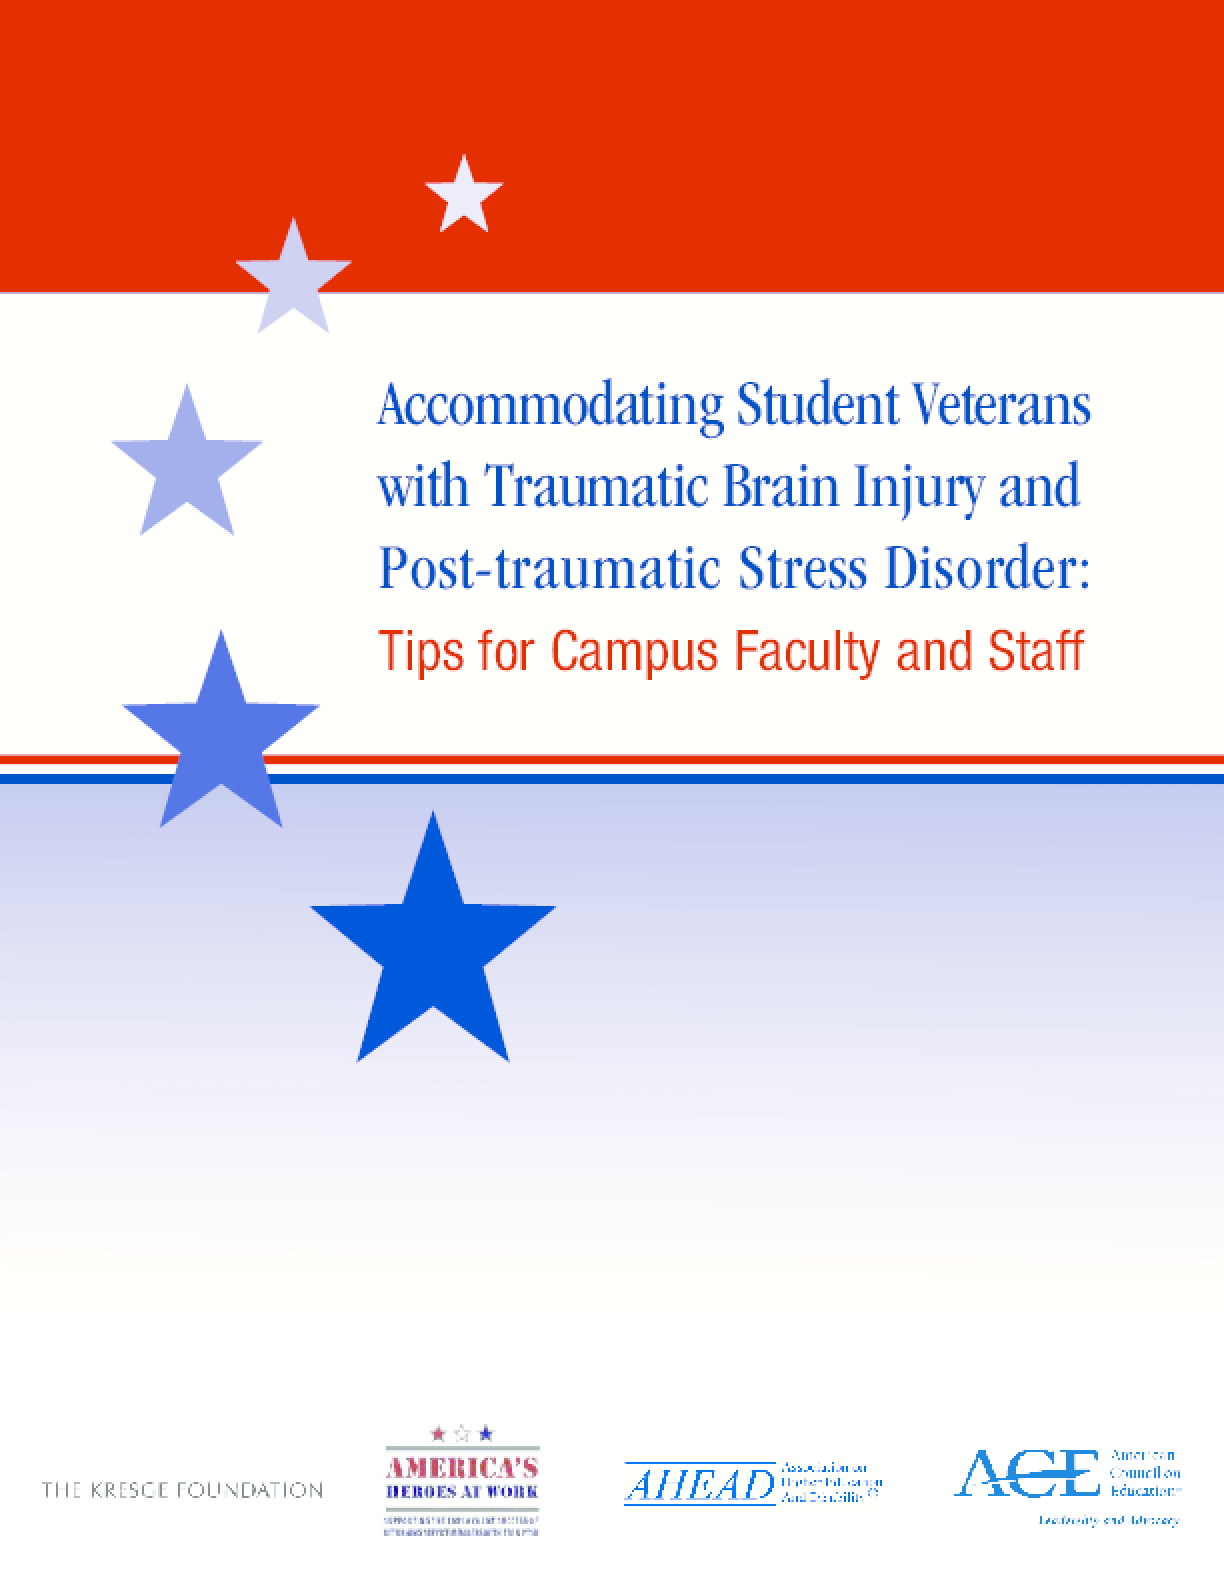 Accommodating Student Veterans with Traumatic Brain Injury and Post-traumatic Stress Disorder: Tips for Campus Faculty and Staff